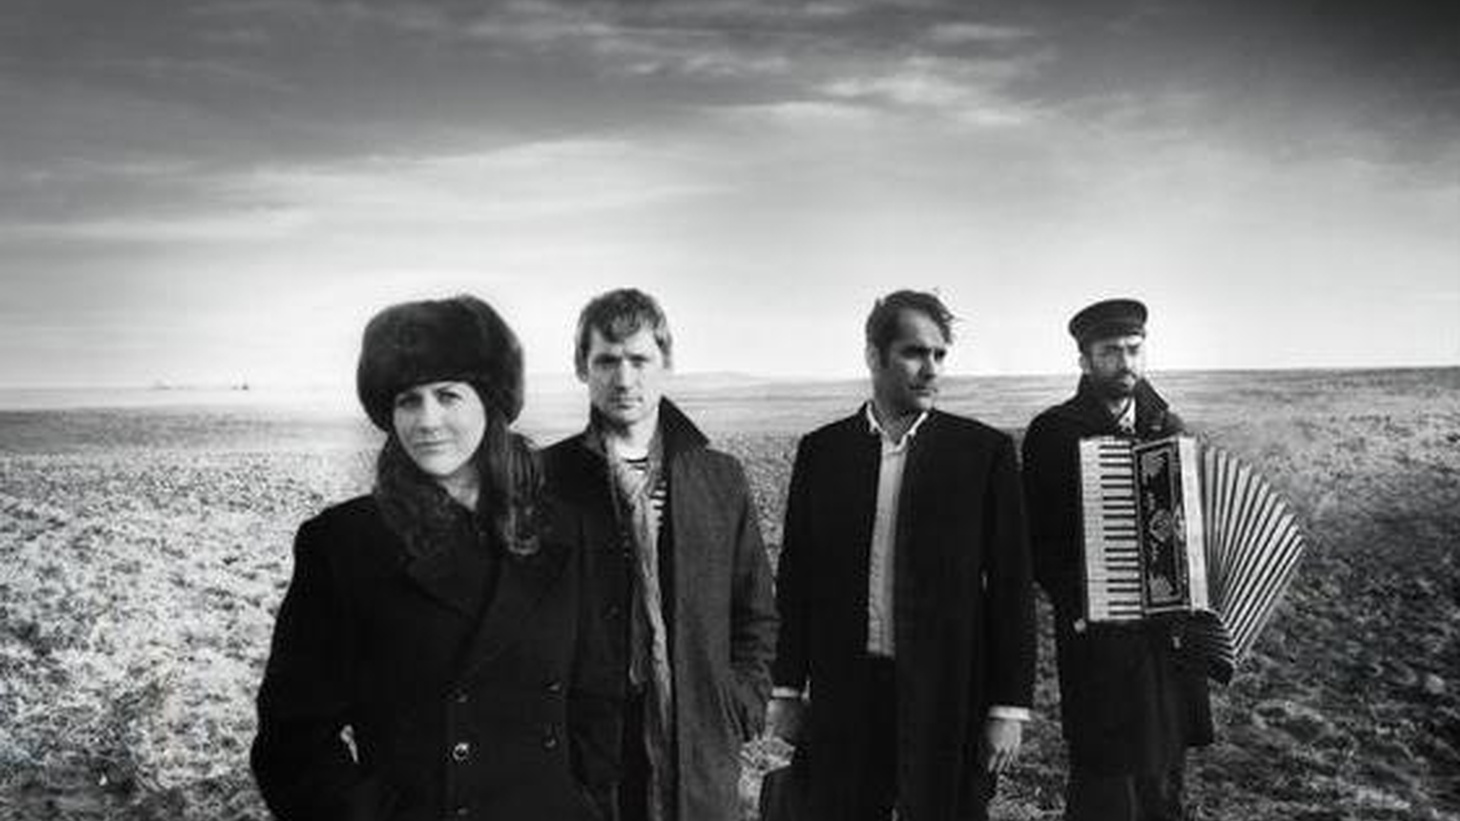 DeVotchKa have a sound that is uniquely their own, combining the flavors of Eastern Europe, dusty desert roads, Mexico and flamenco. They were famously featured in the movie Little Miss Sunshine (thanks to some KCRW airplay), and we're excited to welcome them back to Morning Becomes Eclectic for a live session at 11:15am.